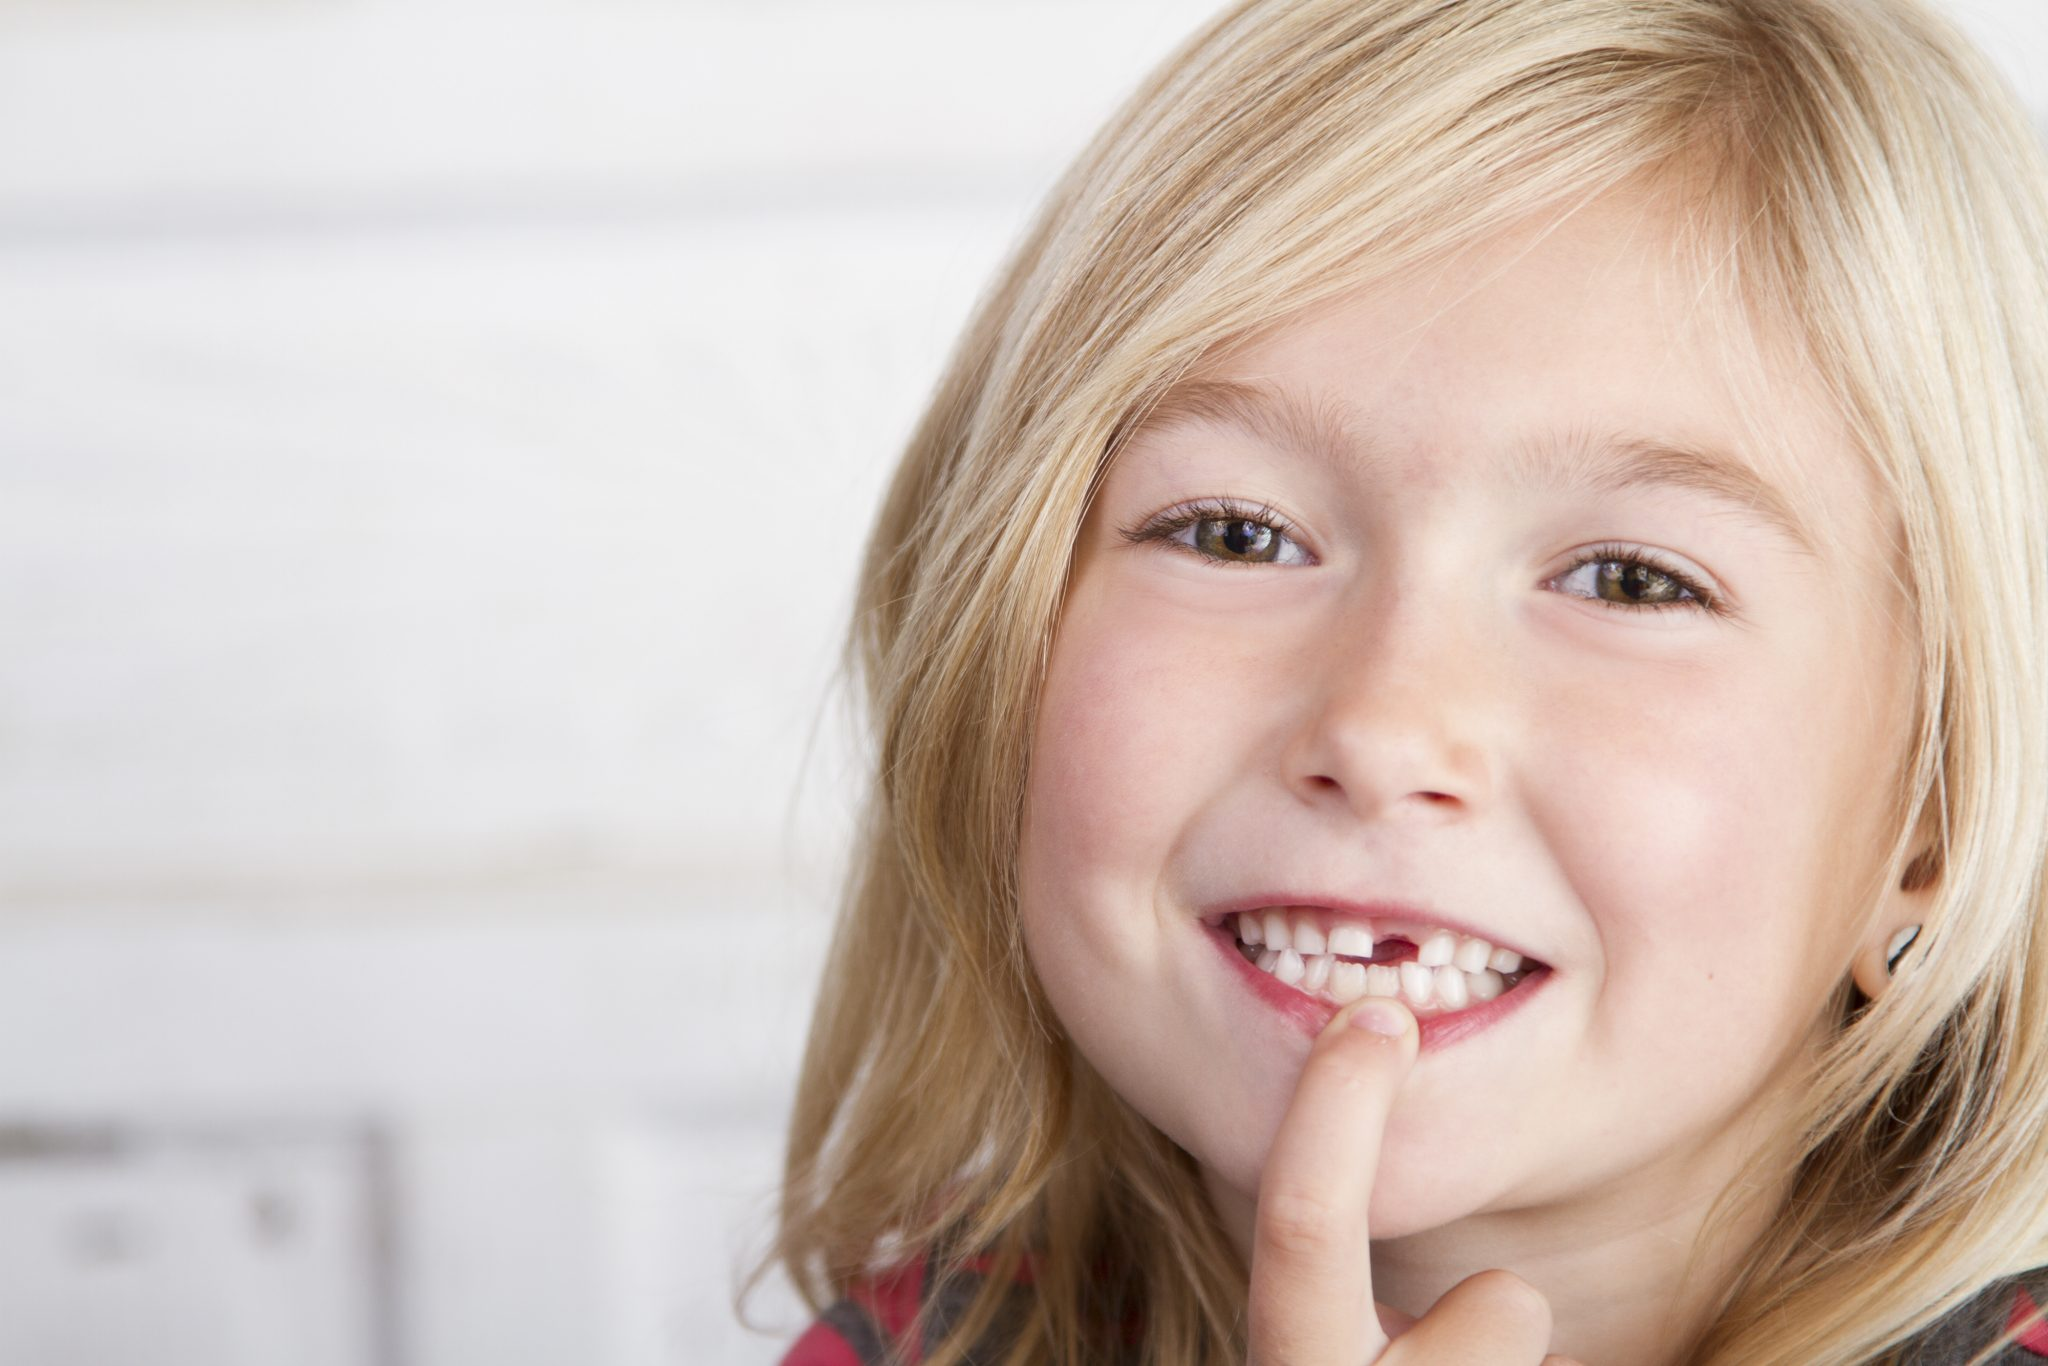 Paediatric Dental Gold Coast - tips to Protect Your Child's Smile